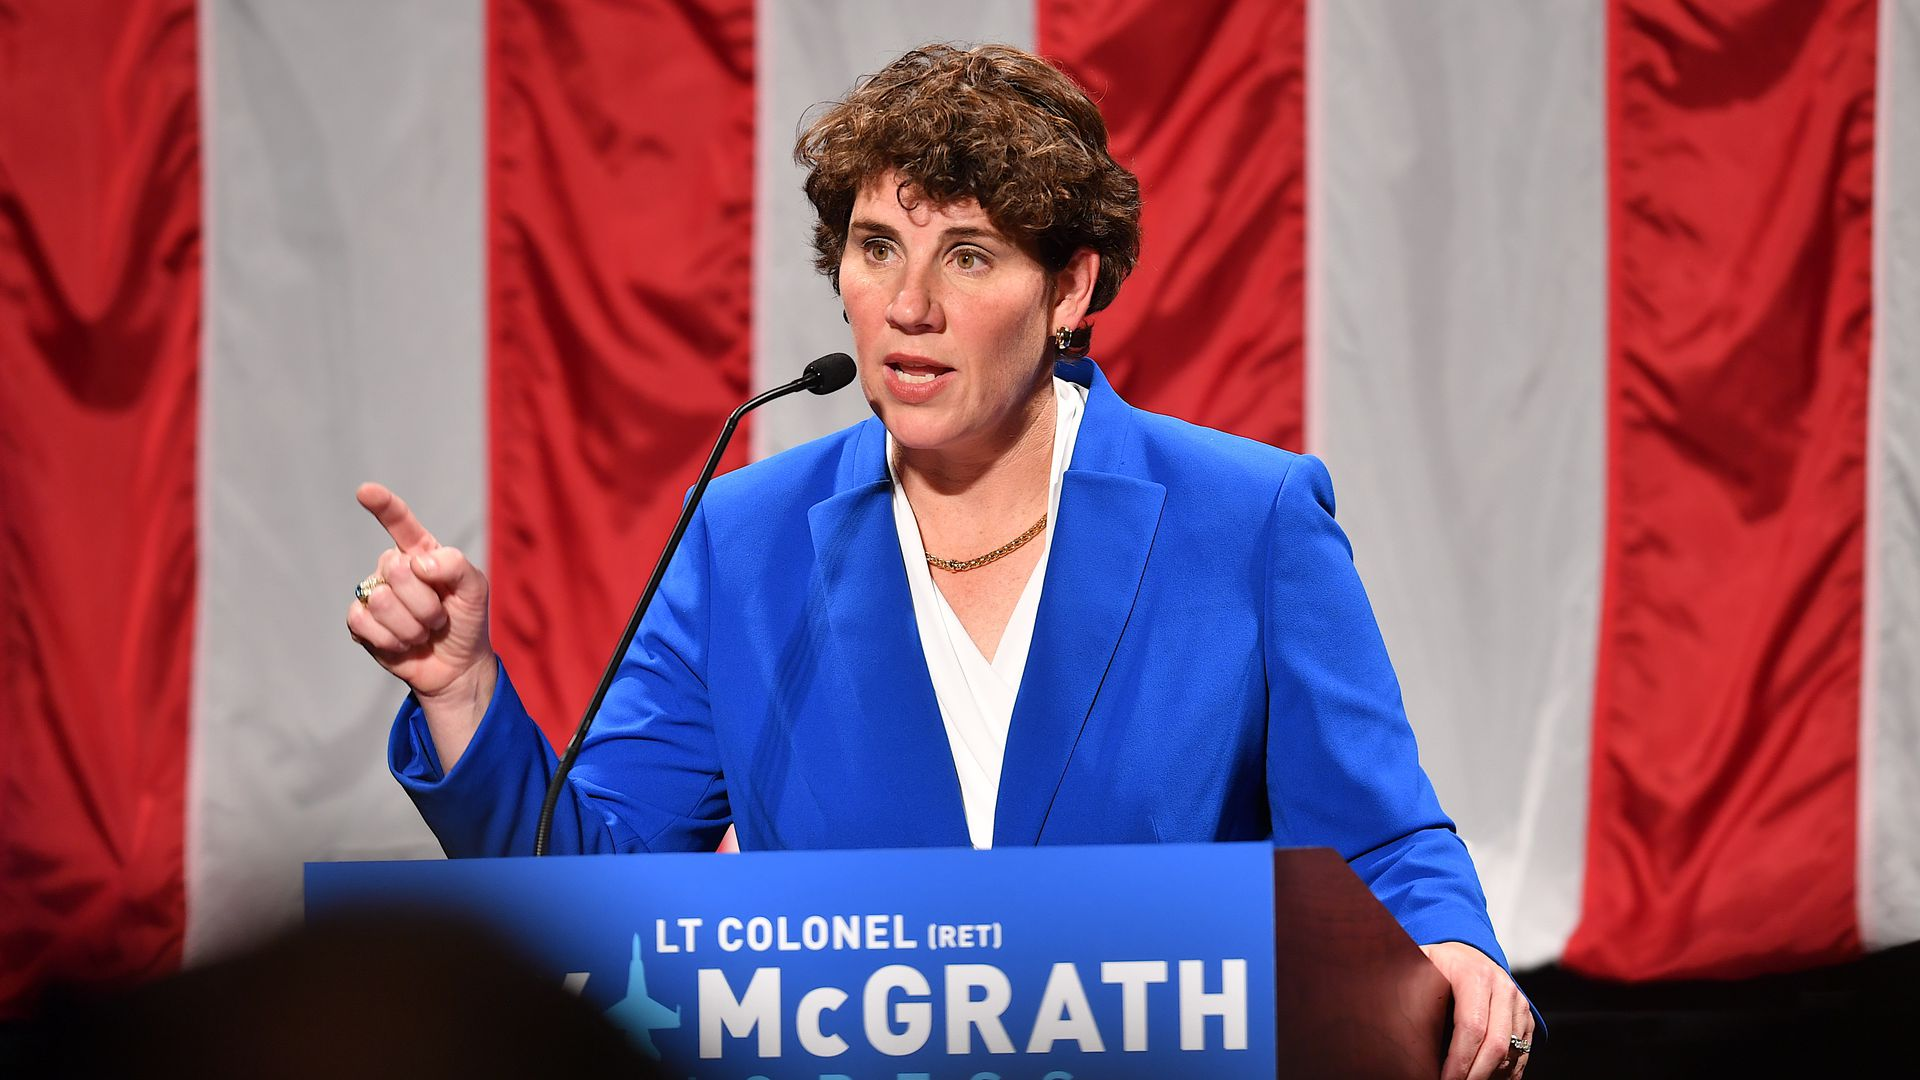 Amy McGrath address supporters after her loss during her Election Night Event at the EKU Center for the Arts on November 6, 2018.